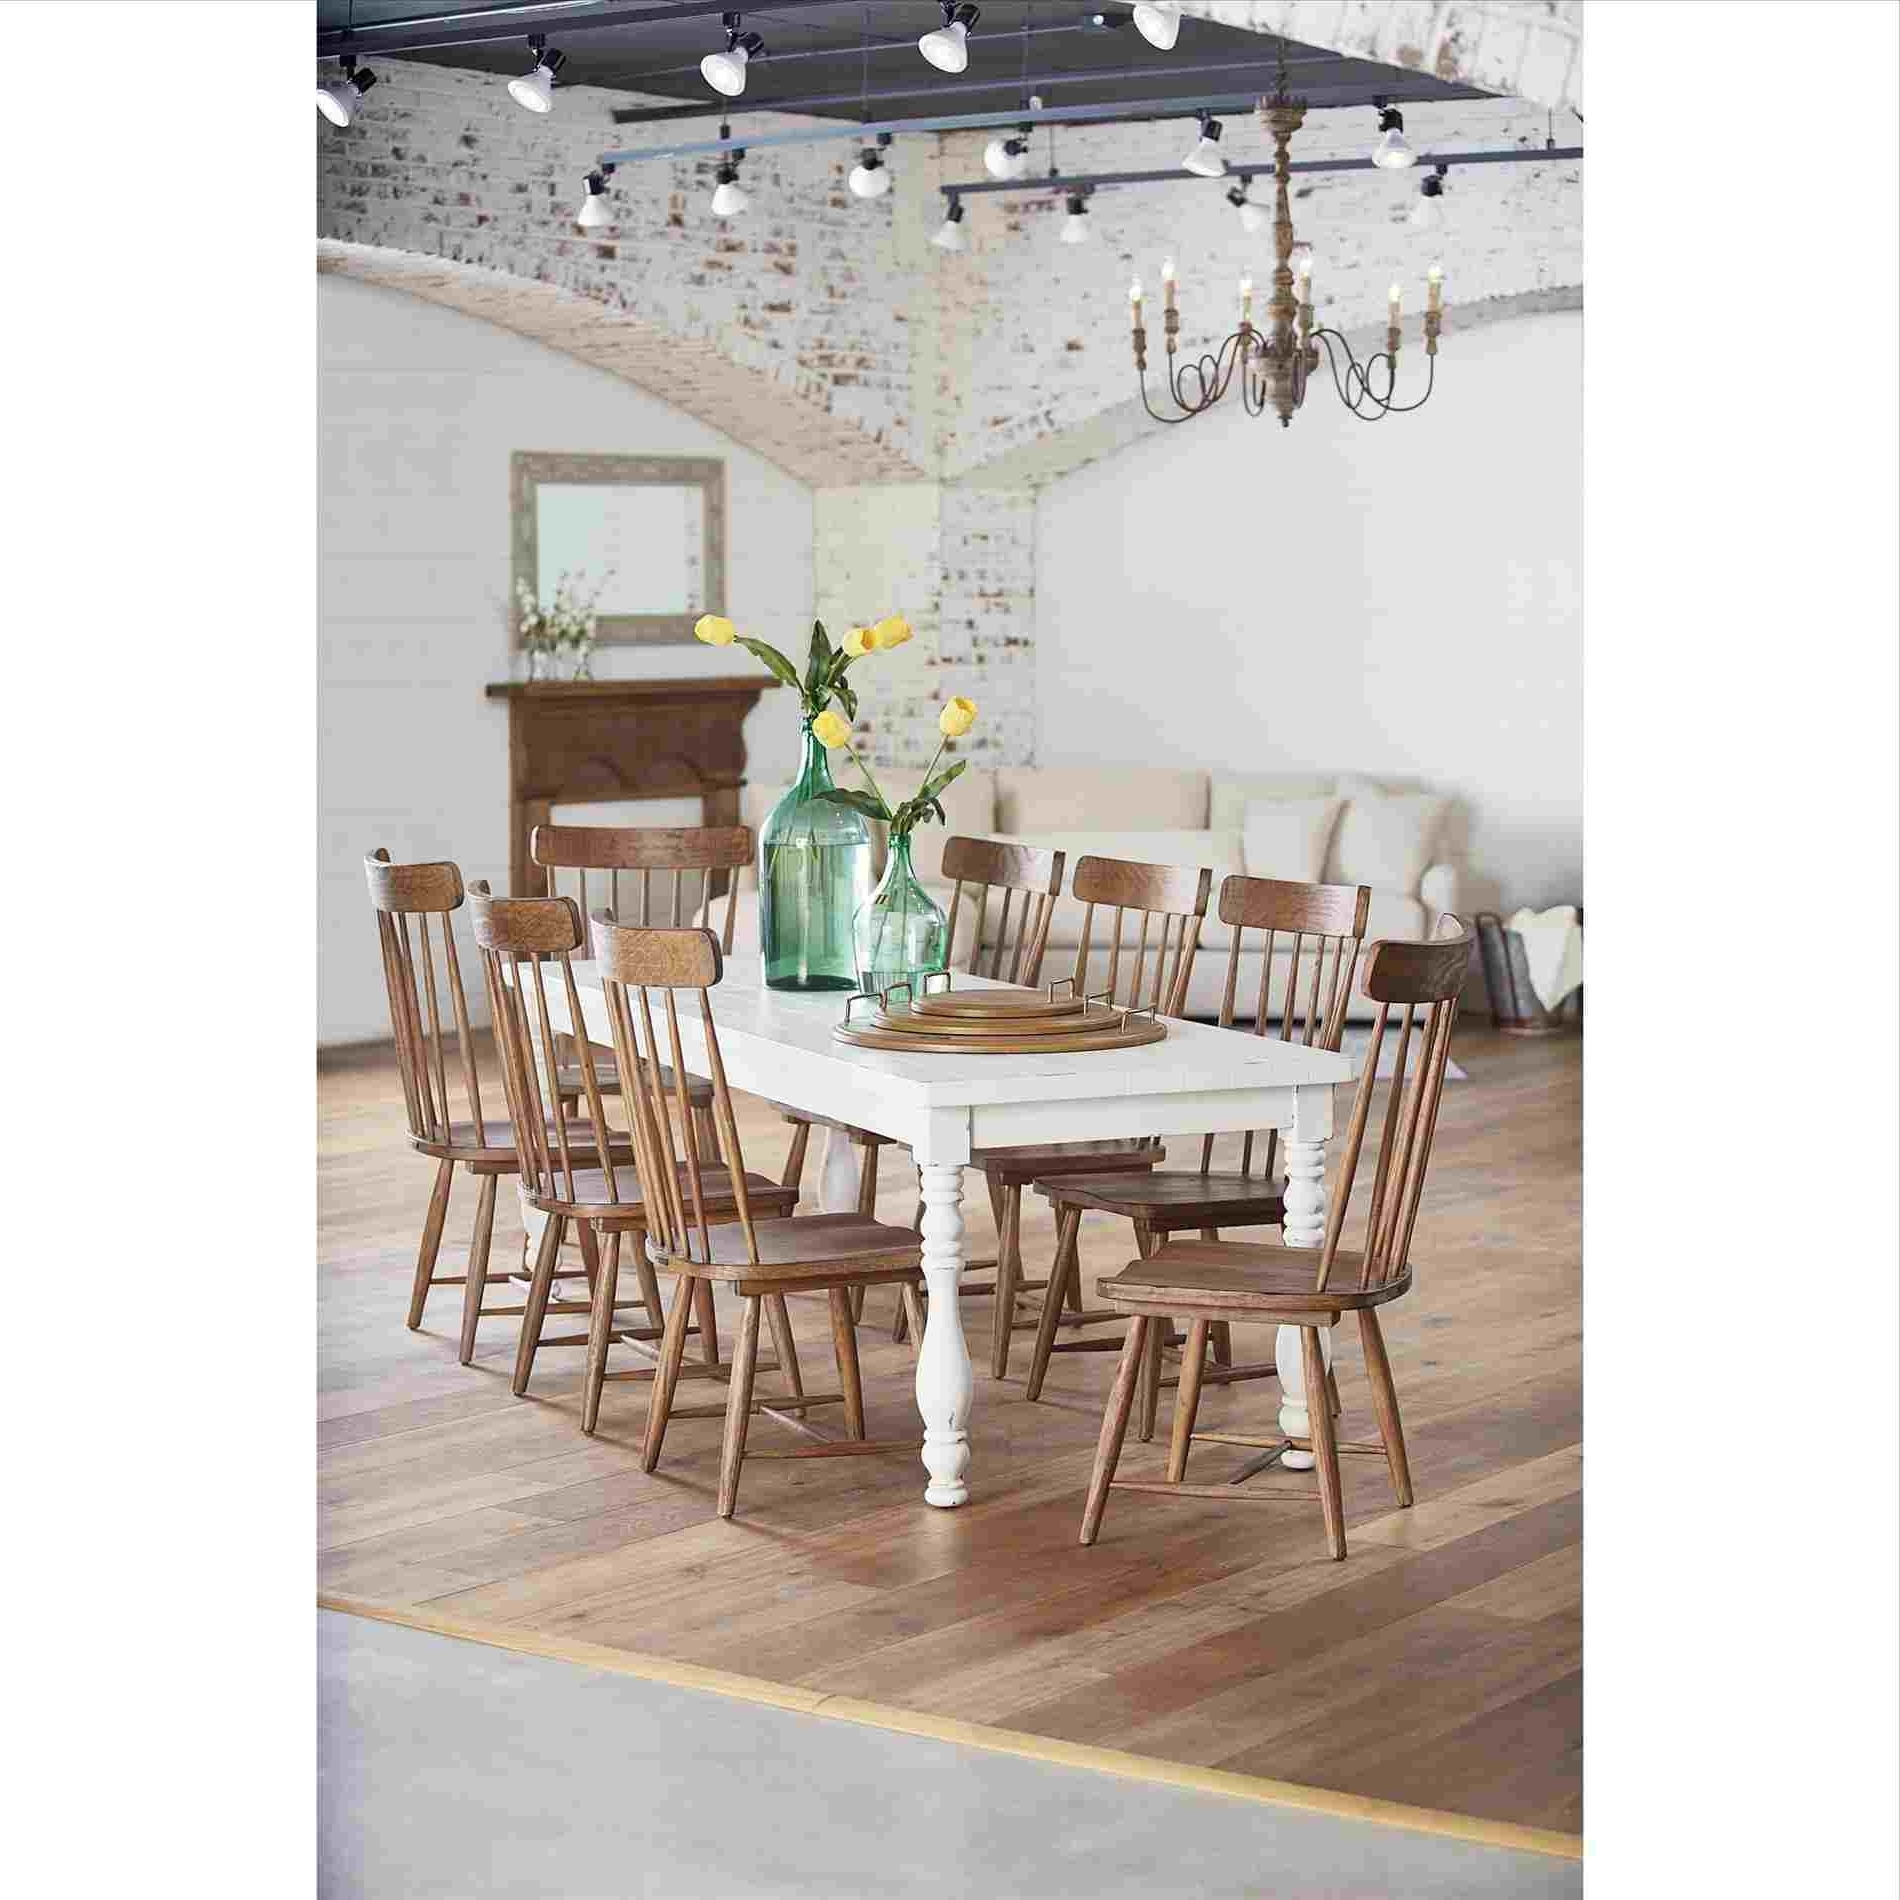 Impressive Magnolia Home Bedroom Furniture Or Joanna Gaines in Recent Magnolia Home Prairie Dining Tables